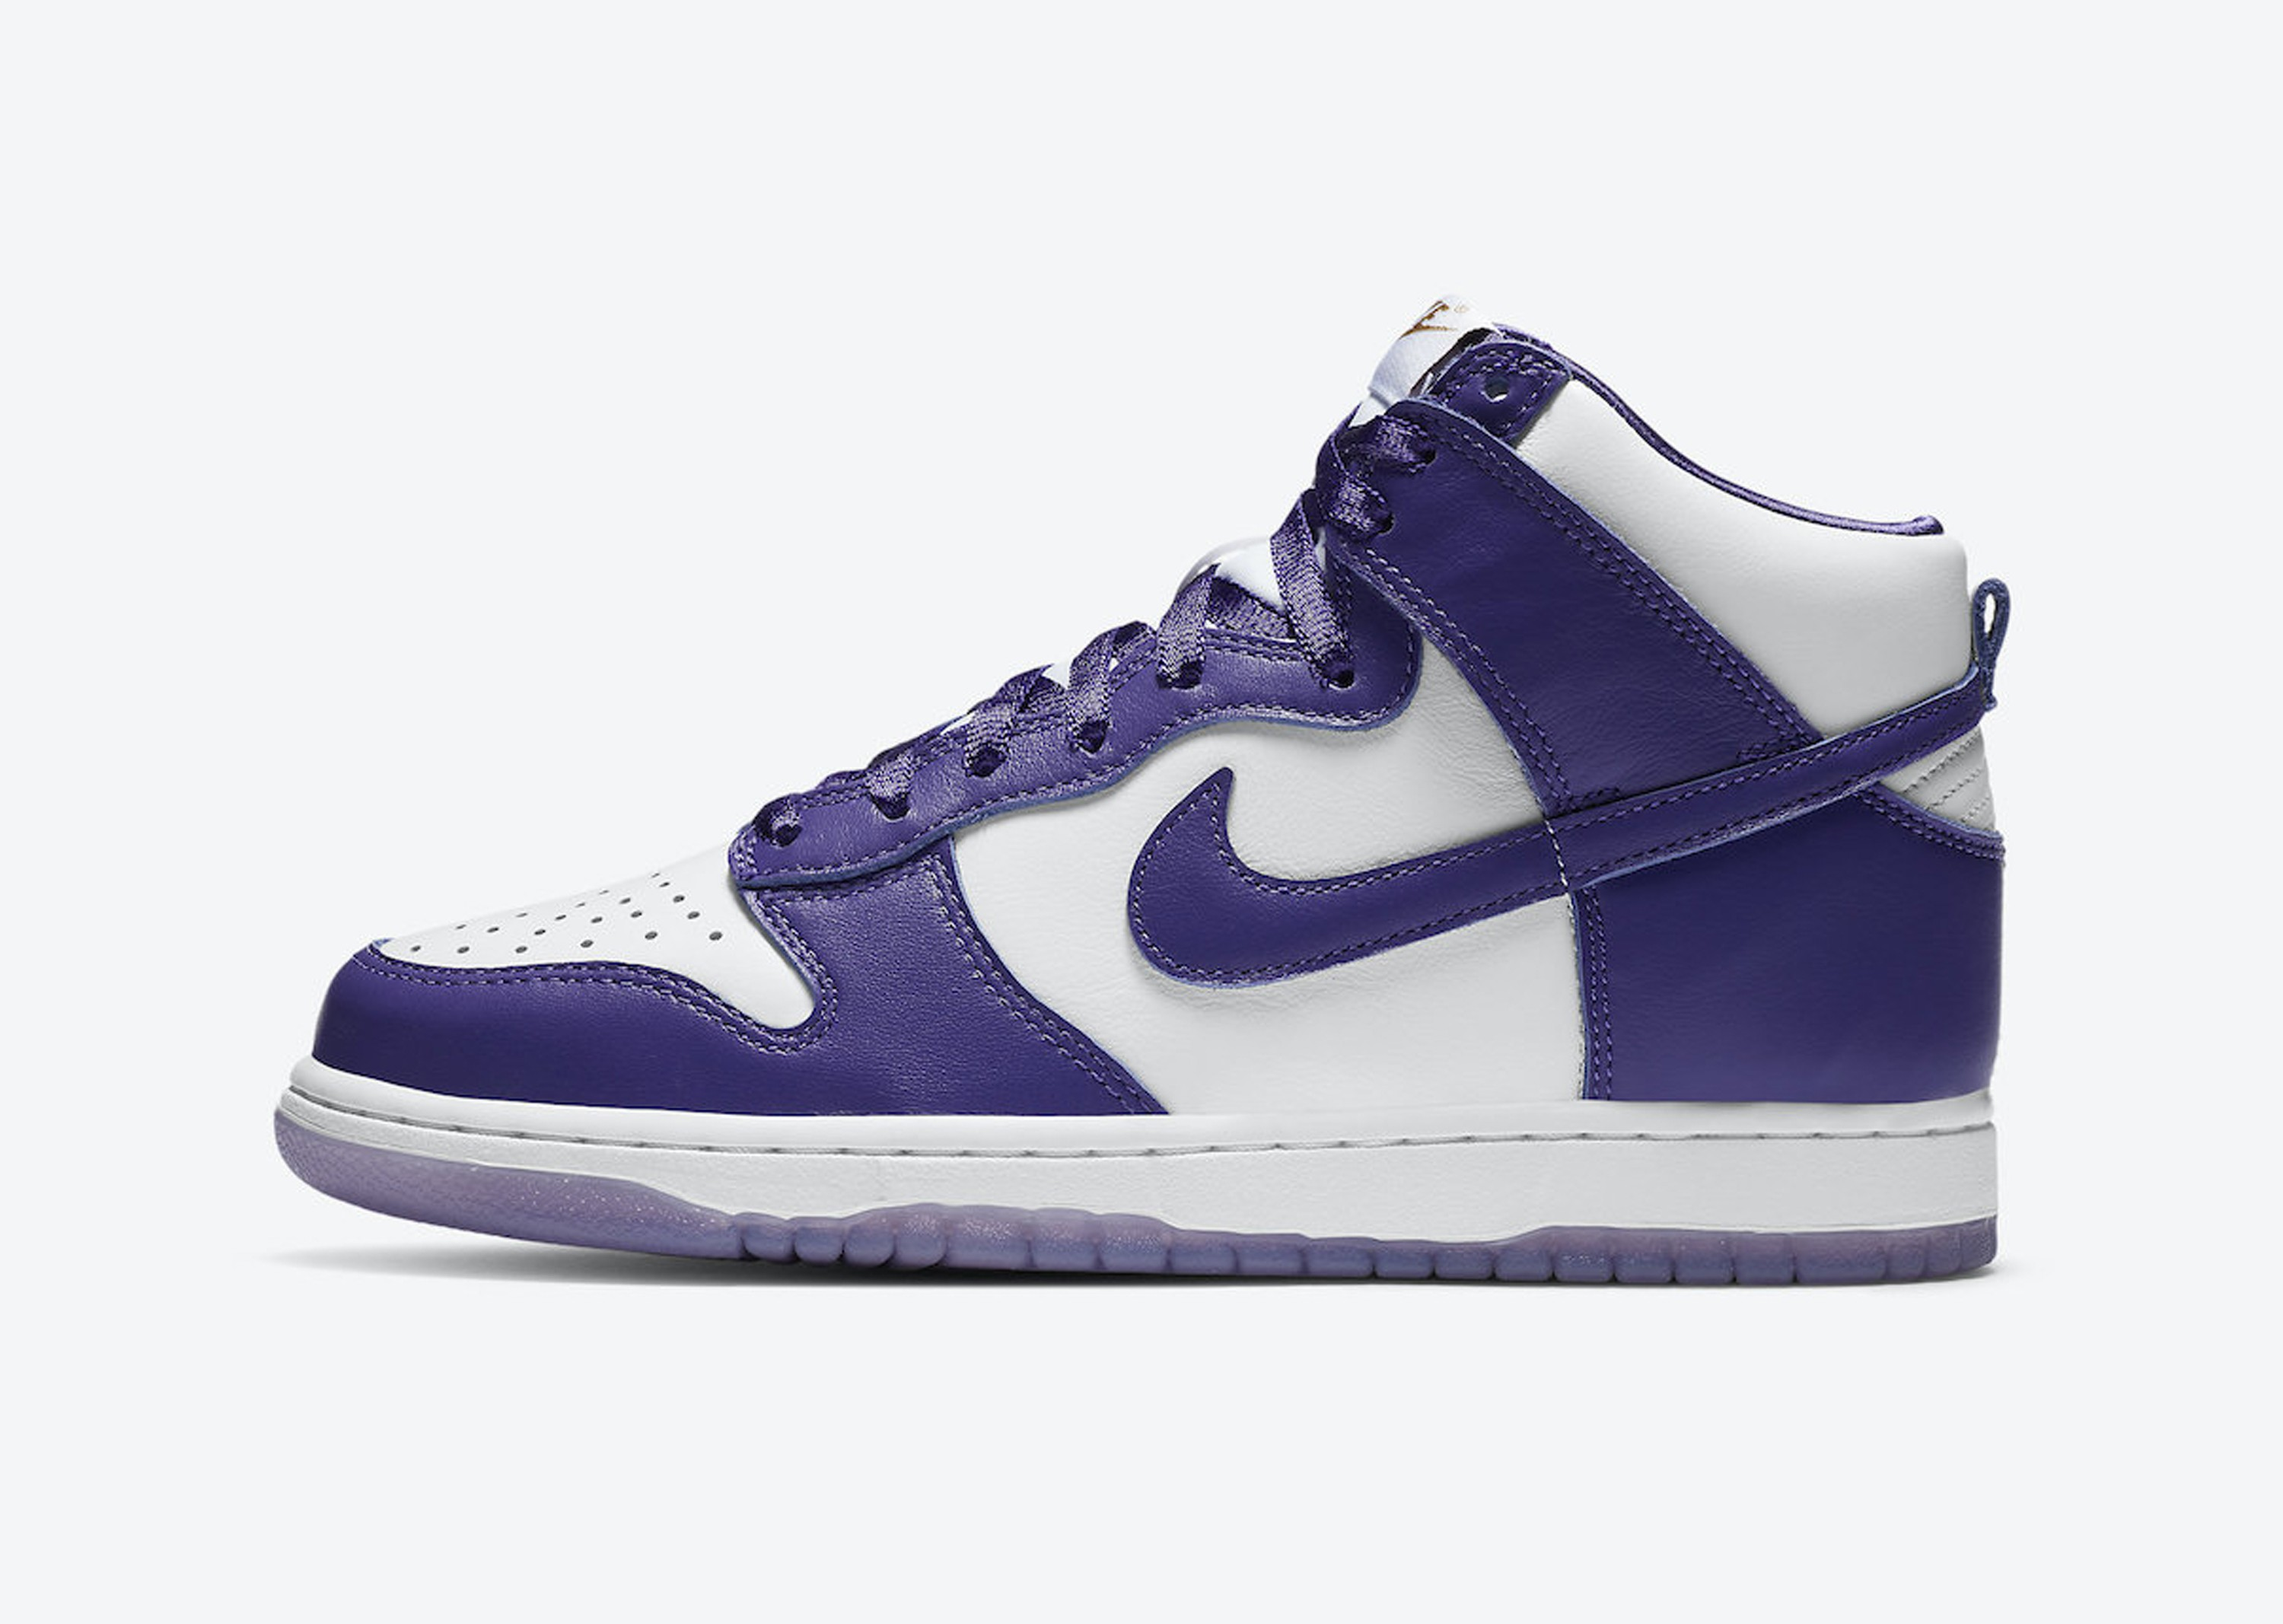 DUNK_HIGH_PURPLE__0002_Layer 6